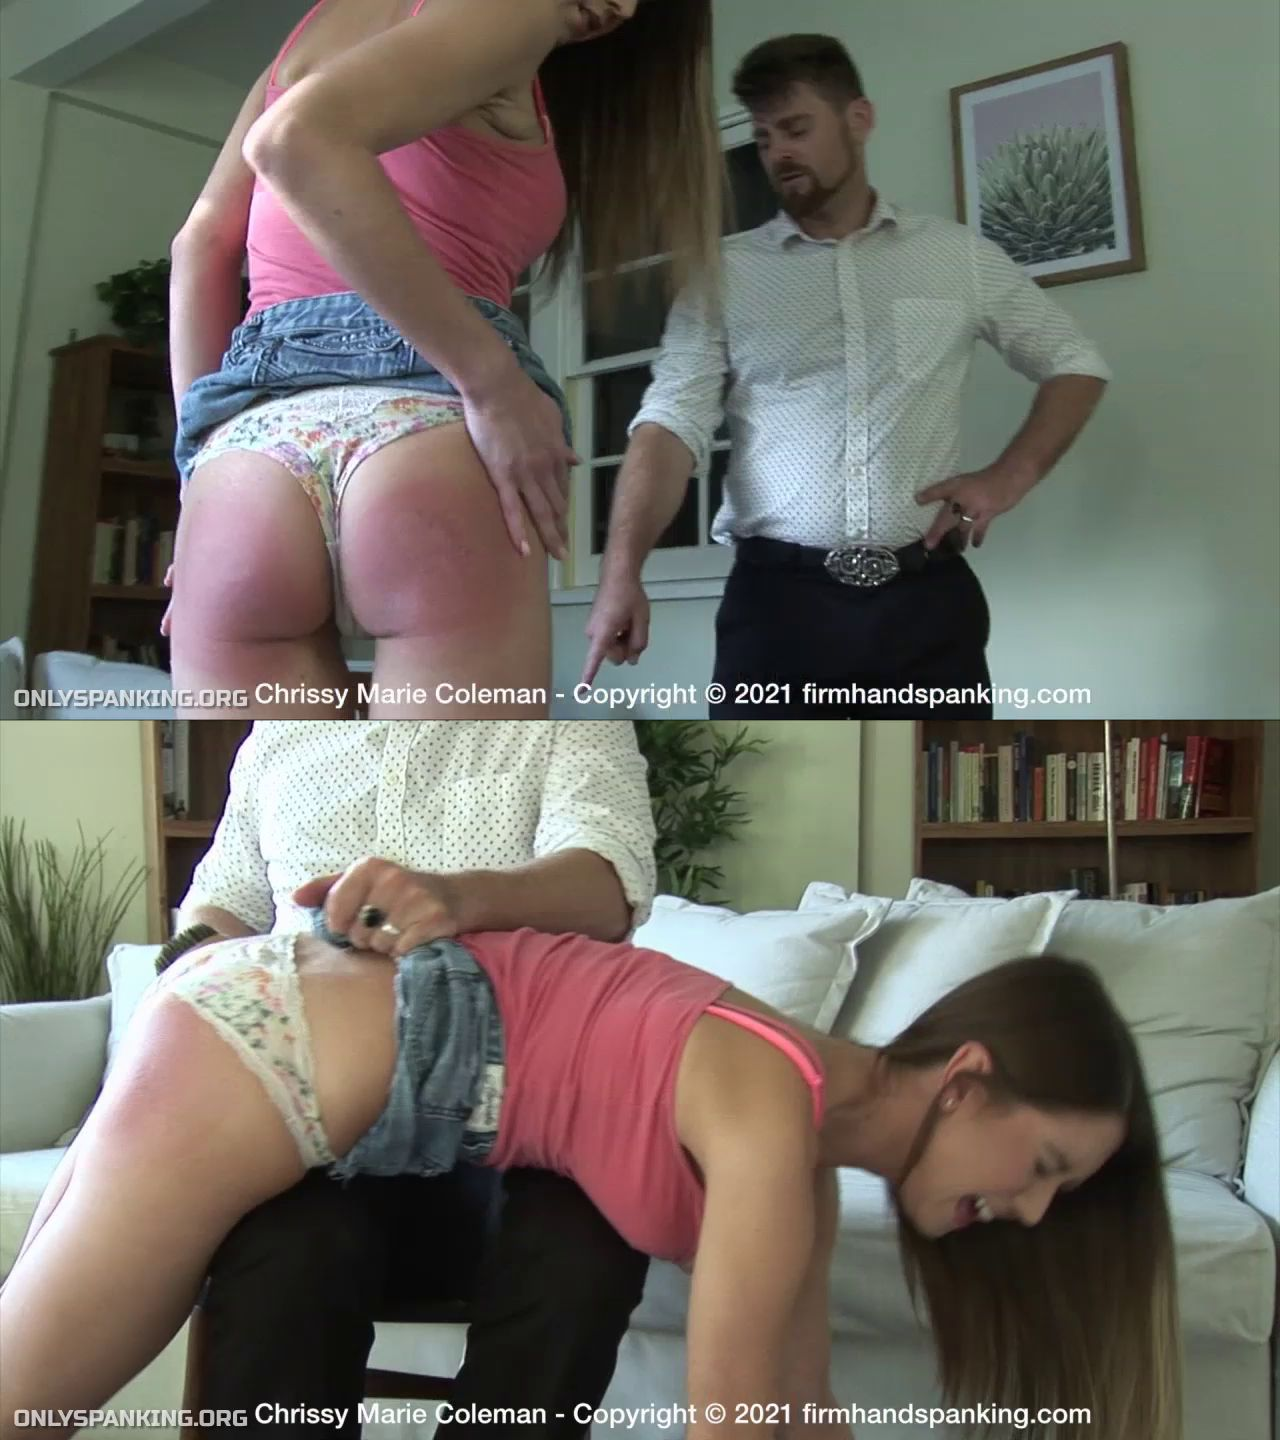 Firm Hand Spanking – MP4/HD – Chrissy Marie – Country Girl/Will petite Chrissy Marie Coleman survive being spanked with a wooden hairbrush?  (Release date: Aug. 16, 2021)